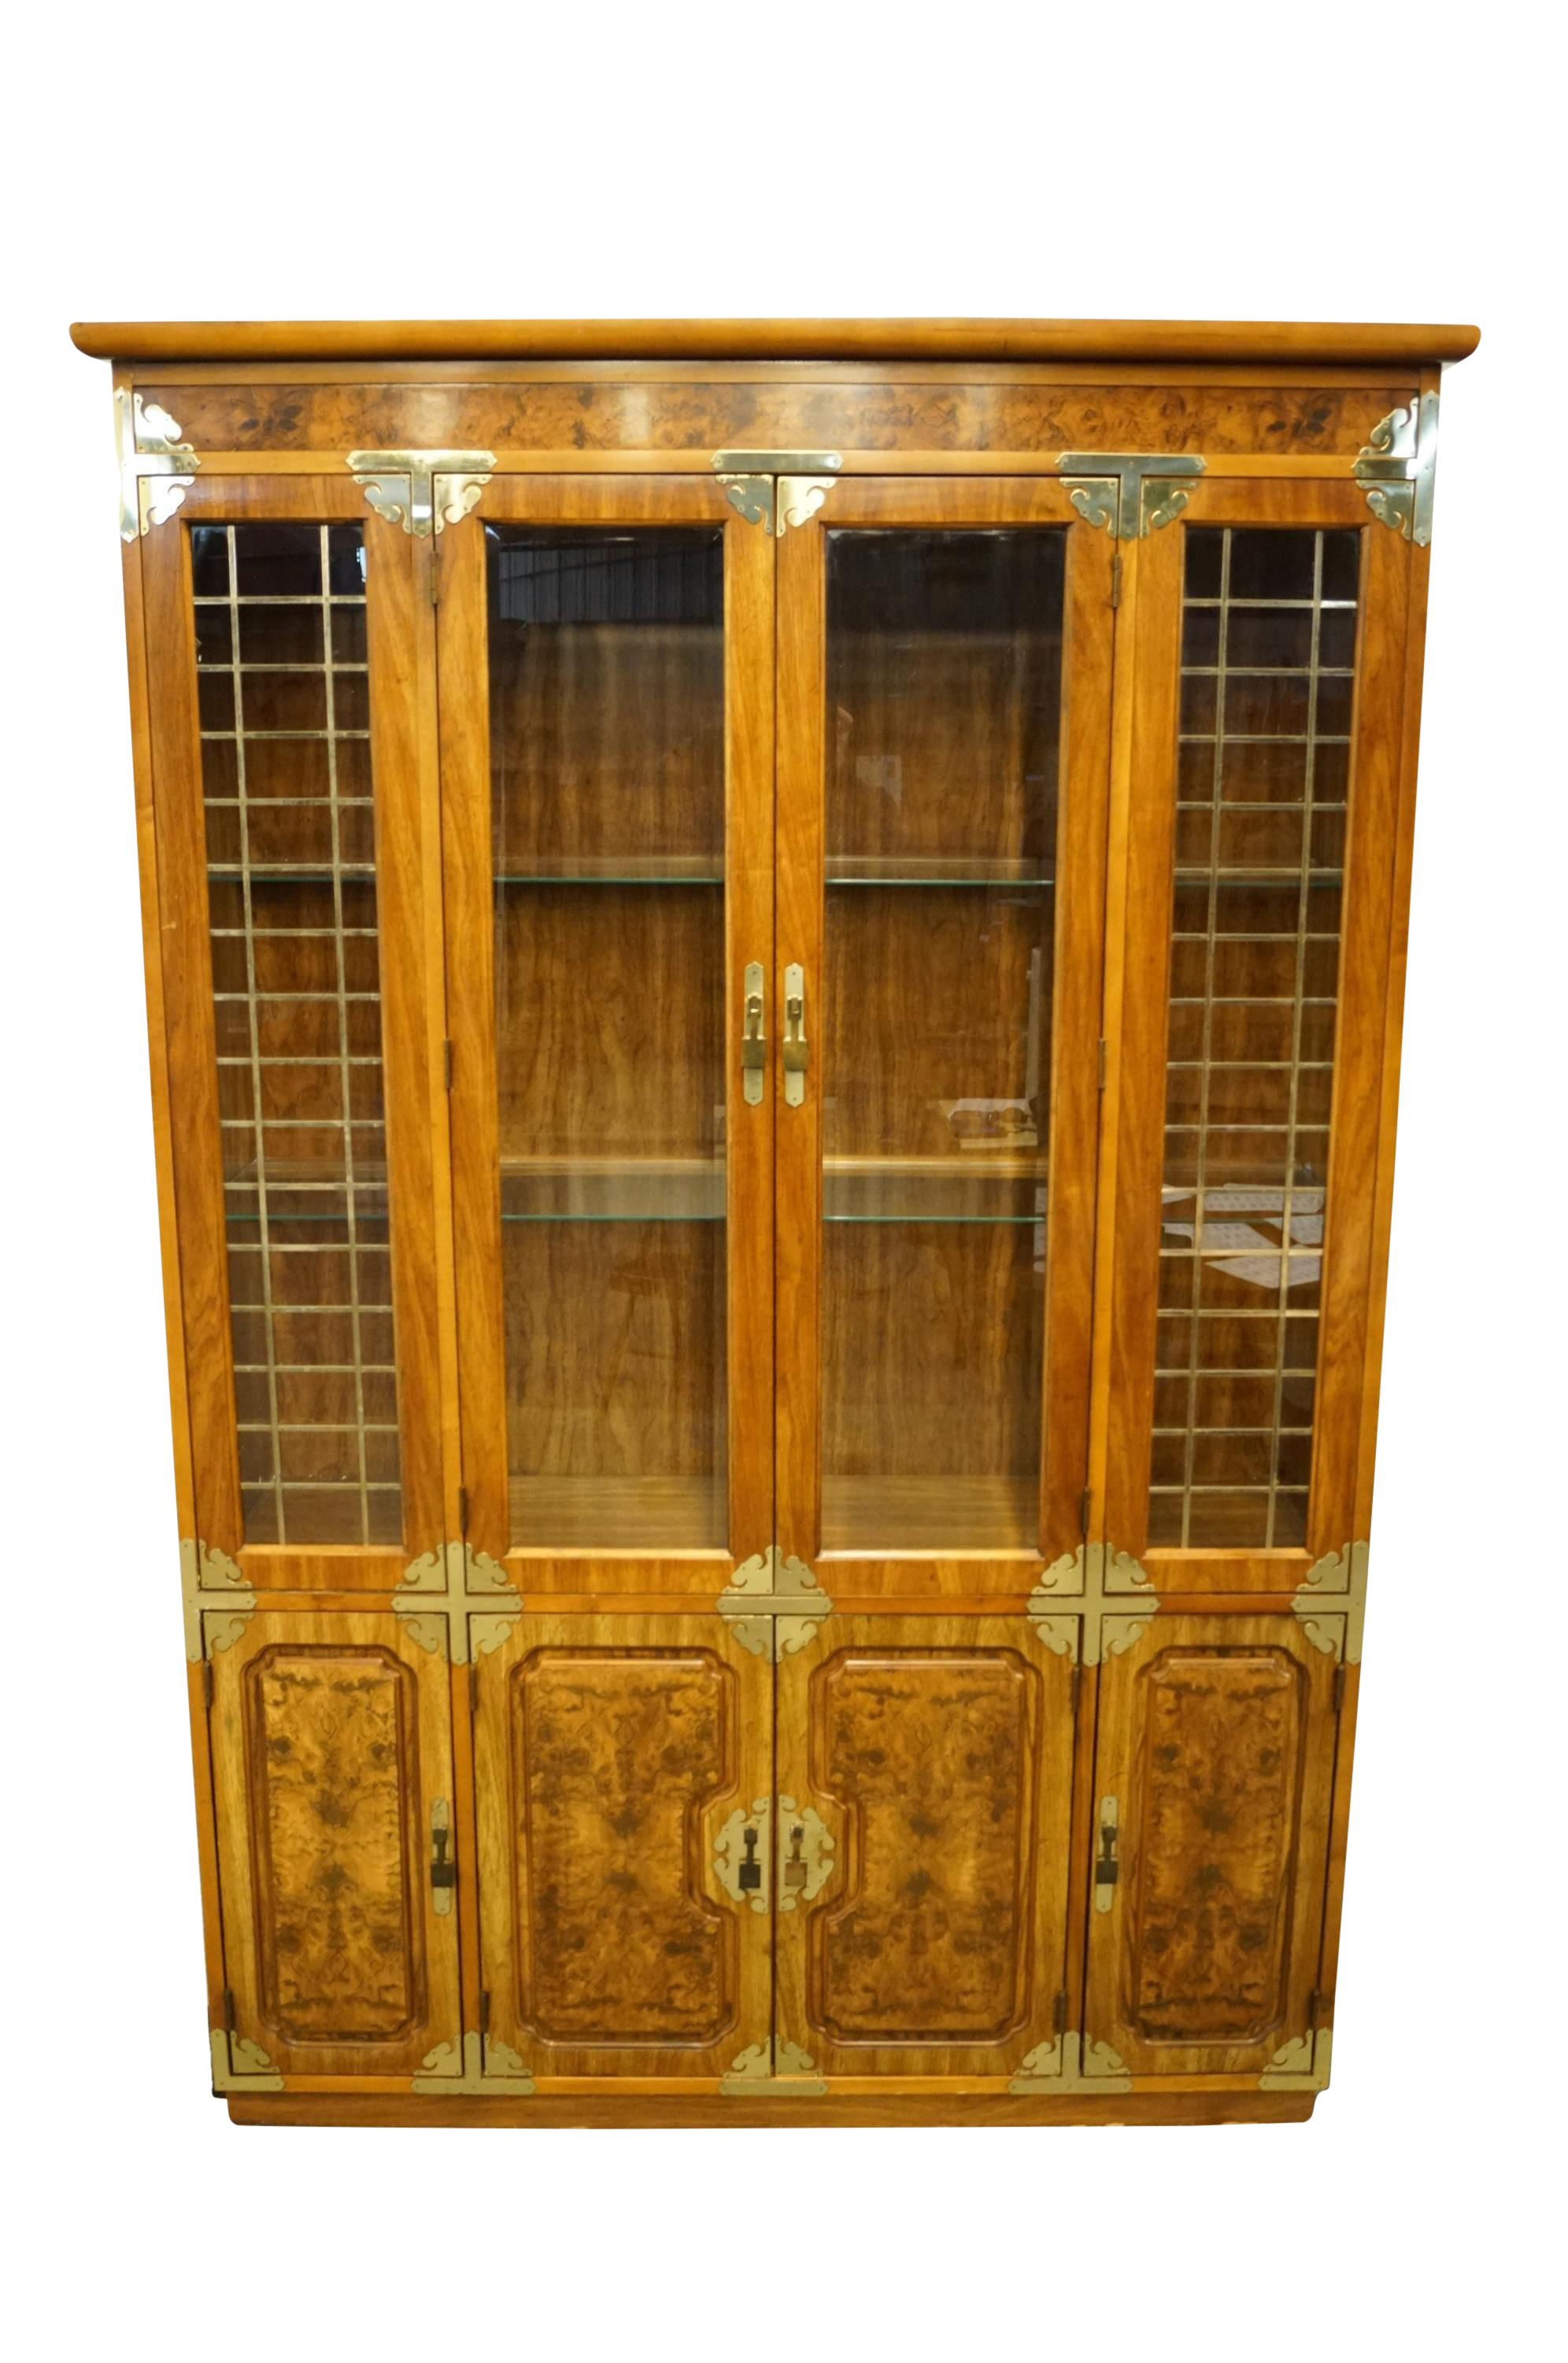 20th Century Chinoiserie Bernhardt Furniture Illuminated Display China Cabinet